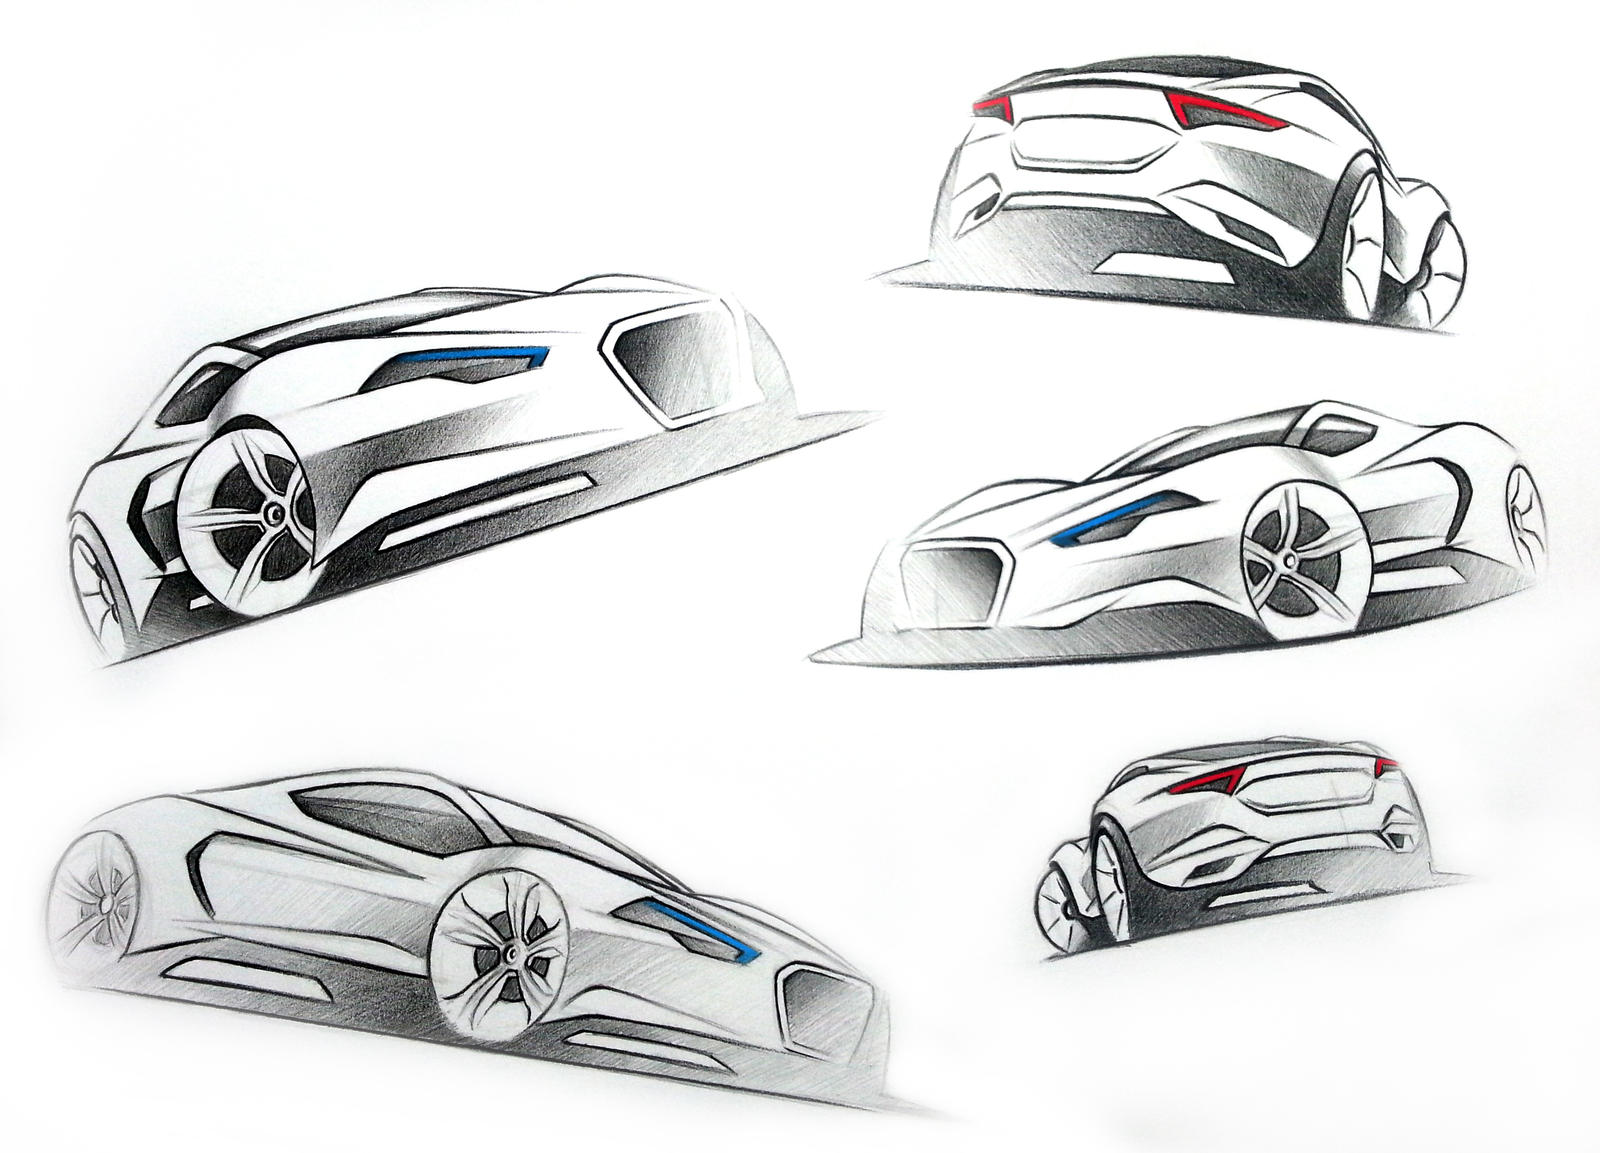 Exceptional Sports Car Sketches By LoccoRico Sports Car Sketches By LoccoRico